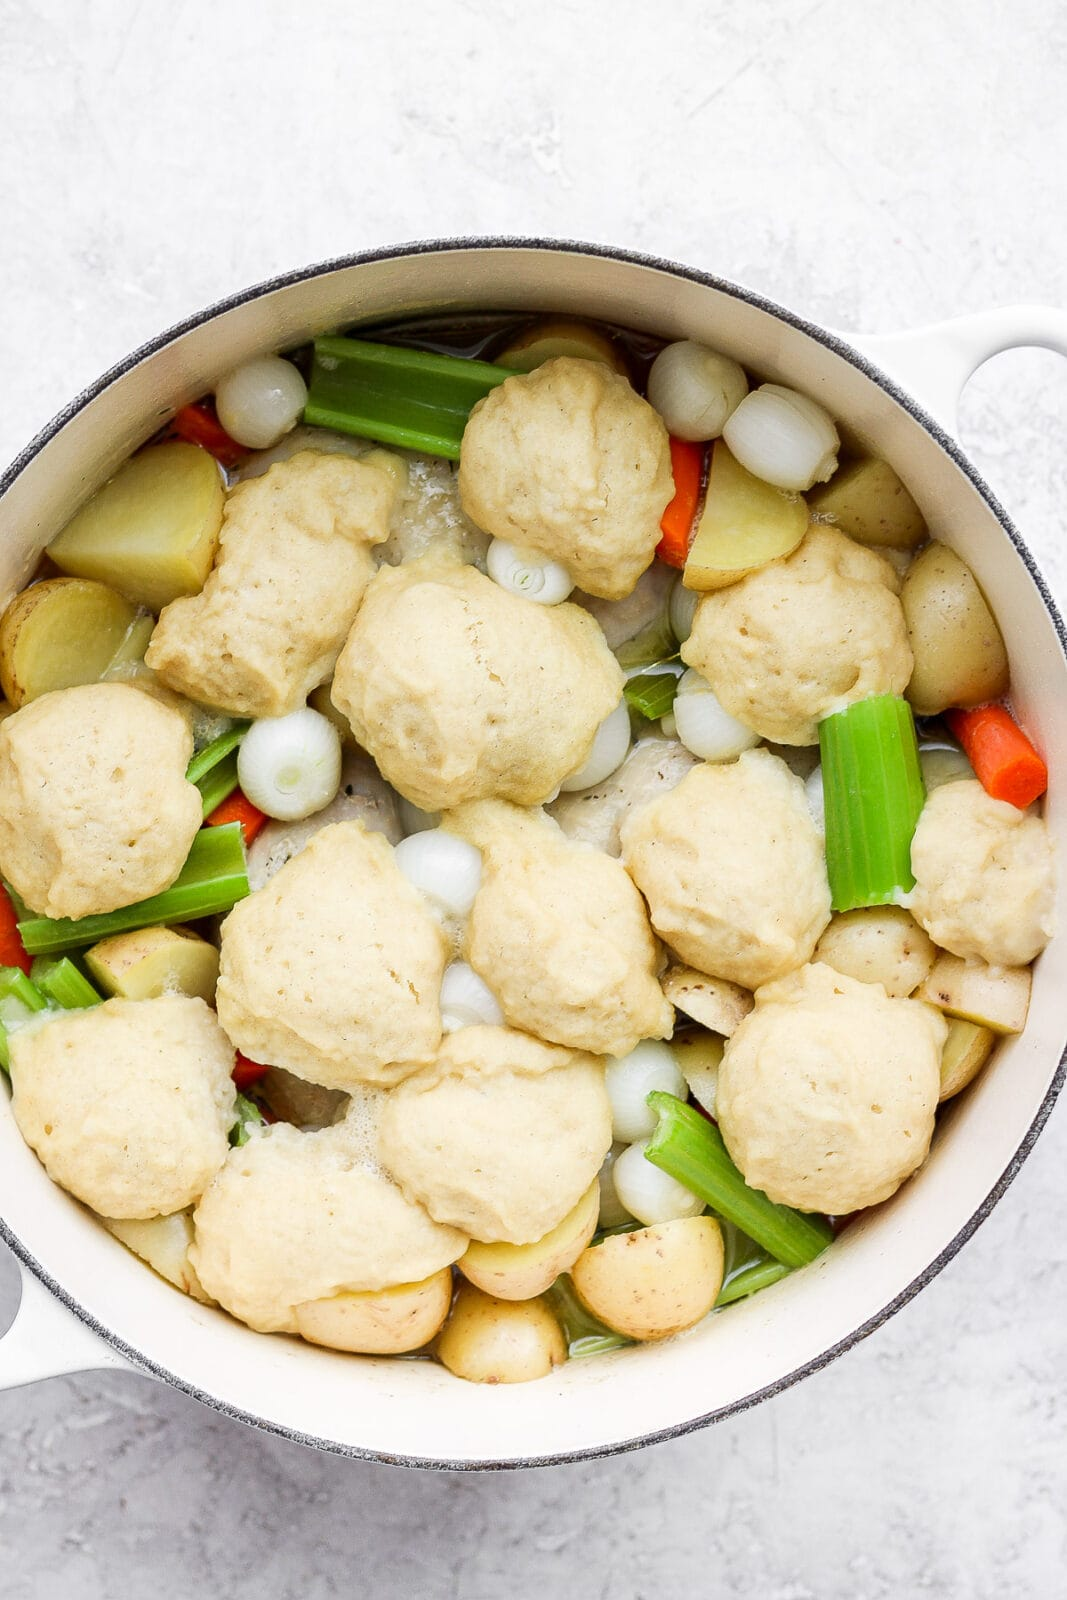 Dutch Oven filled with chicken and dumplings.